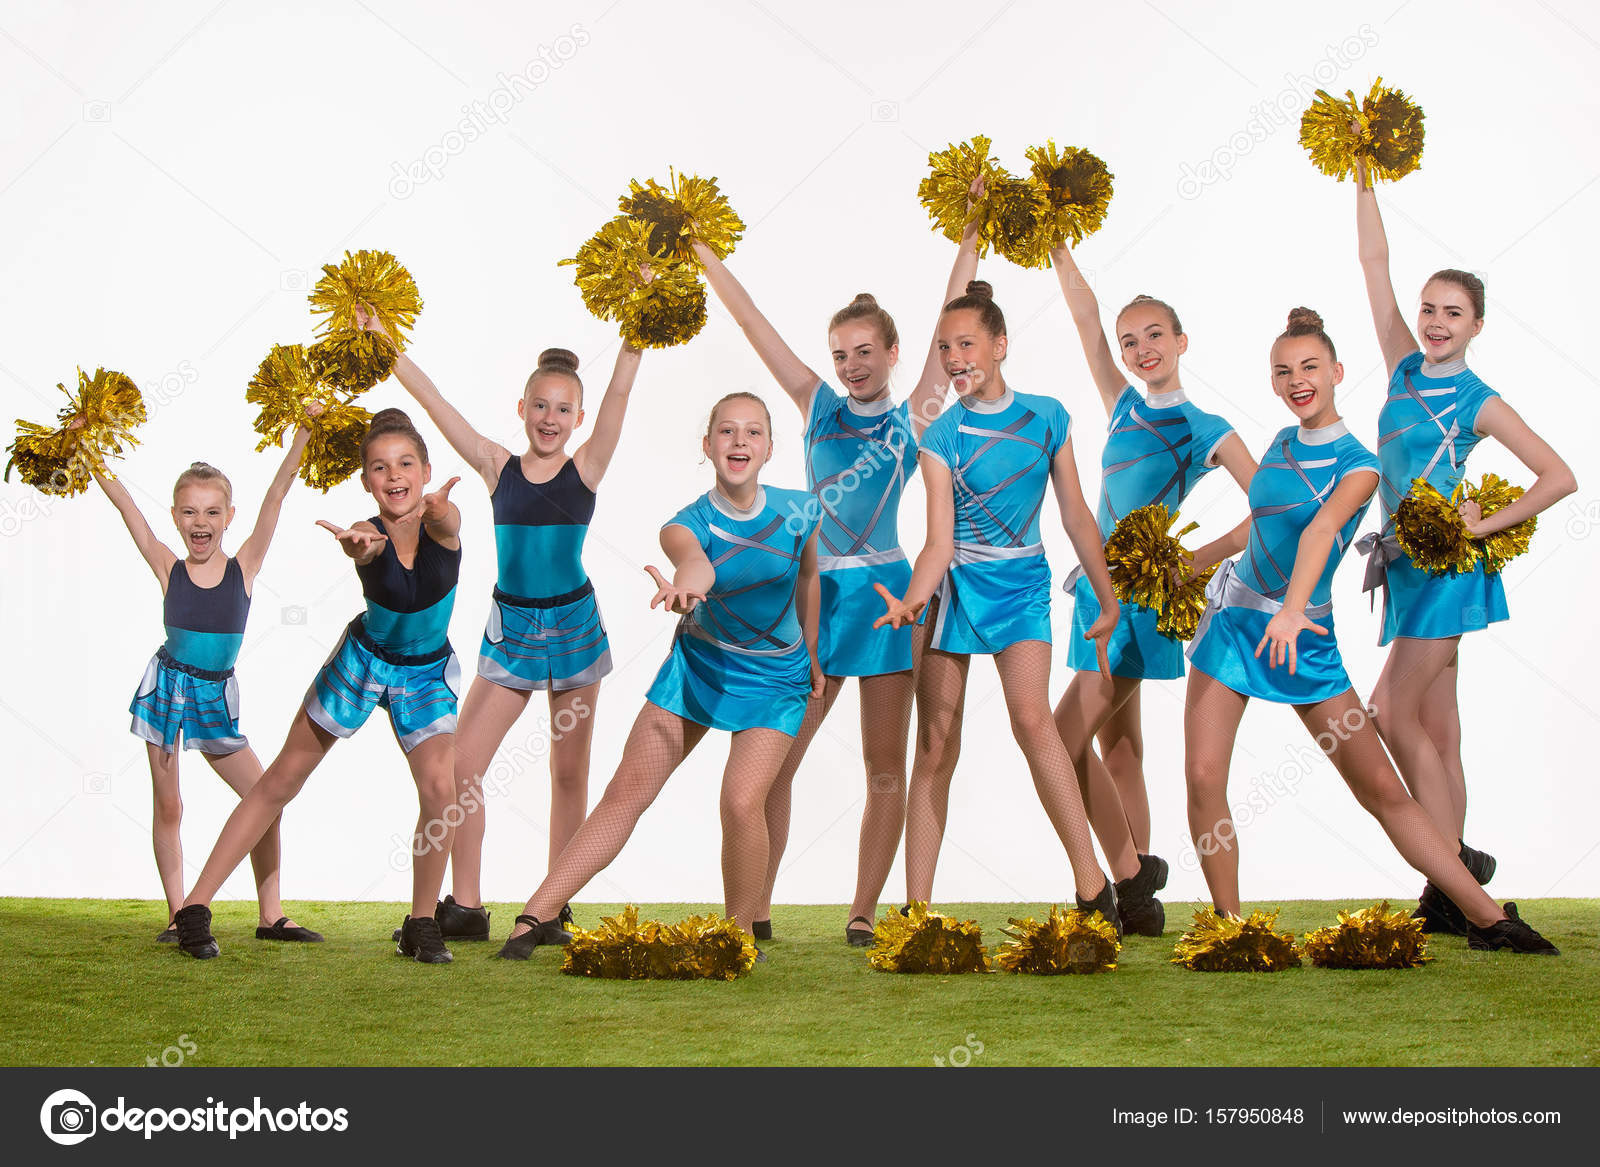 Excellent answer, Teen cheer girl group pics